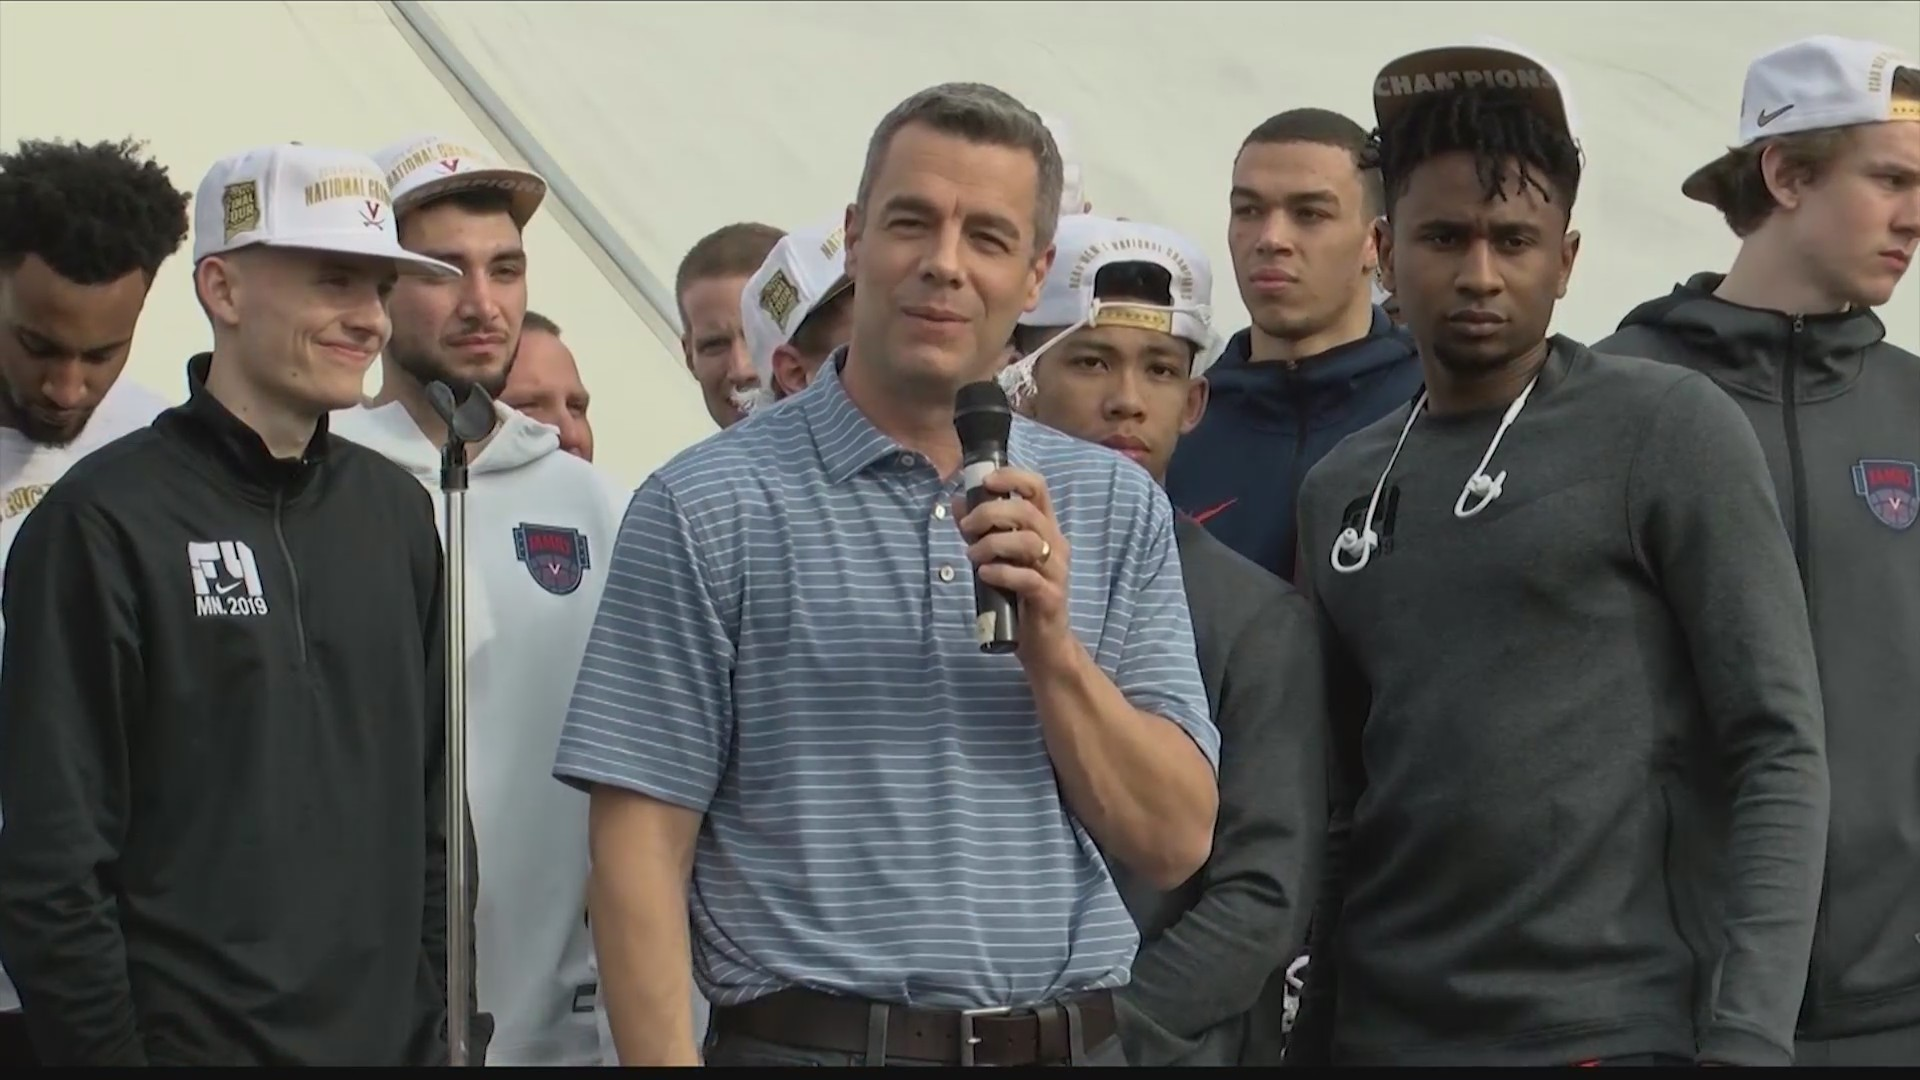 UVA Head Coach Tony Bennett reflects on championship game